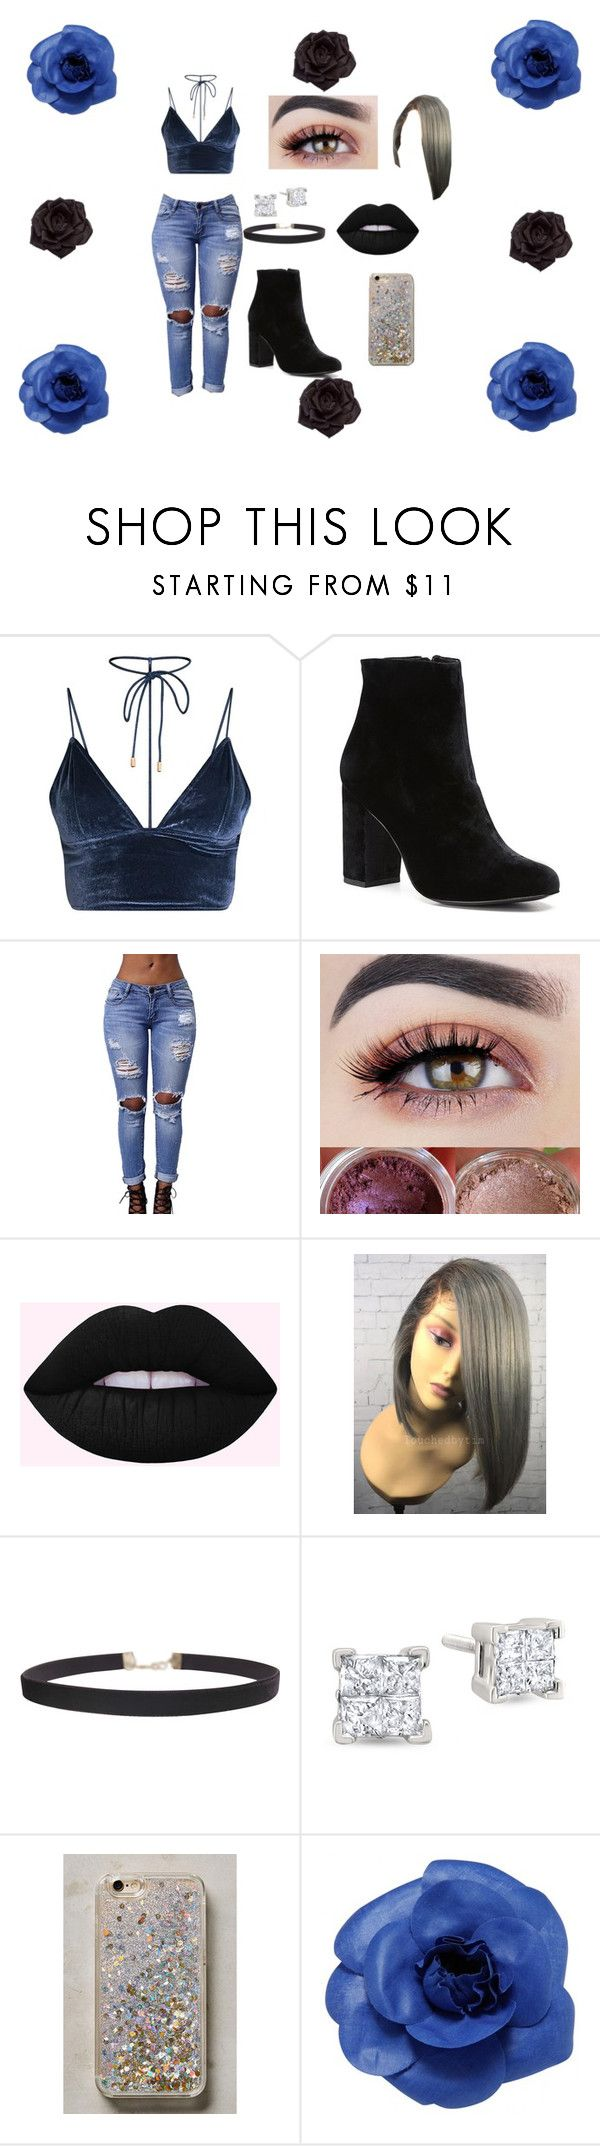 """Blue"" by blackjanija on Polyvore featuring Witchery, Humble Chic, Anthropologie, Chanel and Johnny Loves Rosie"